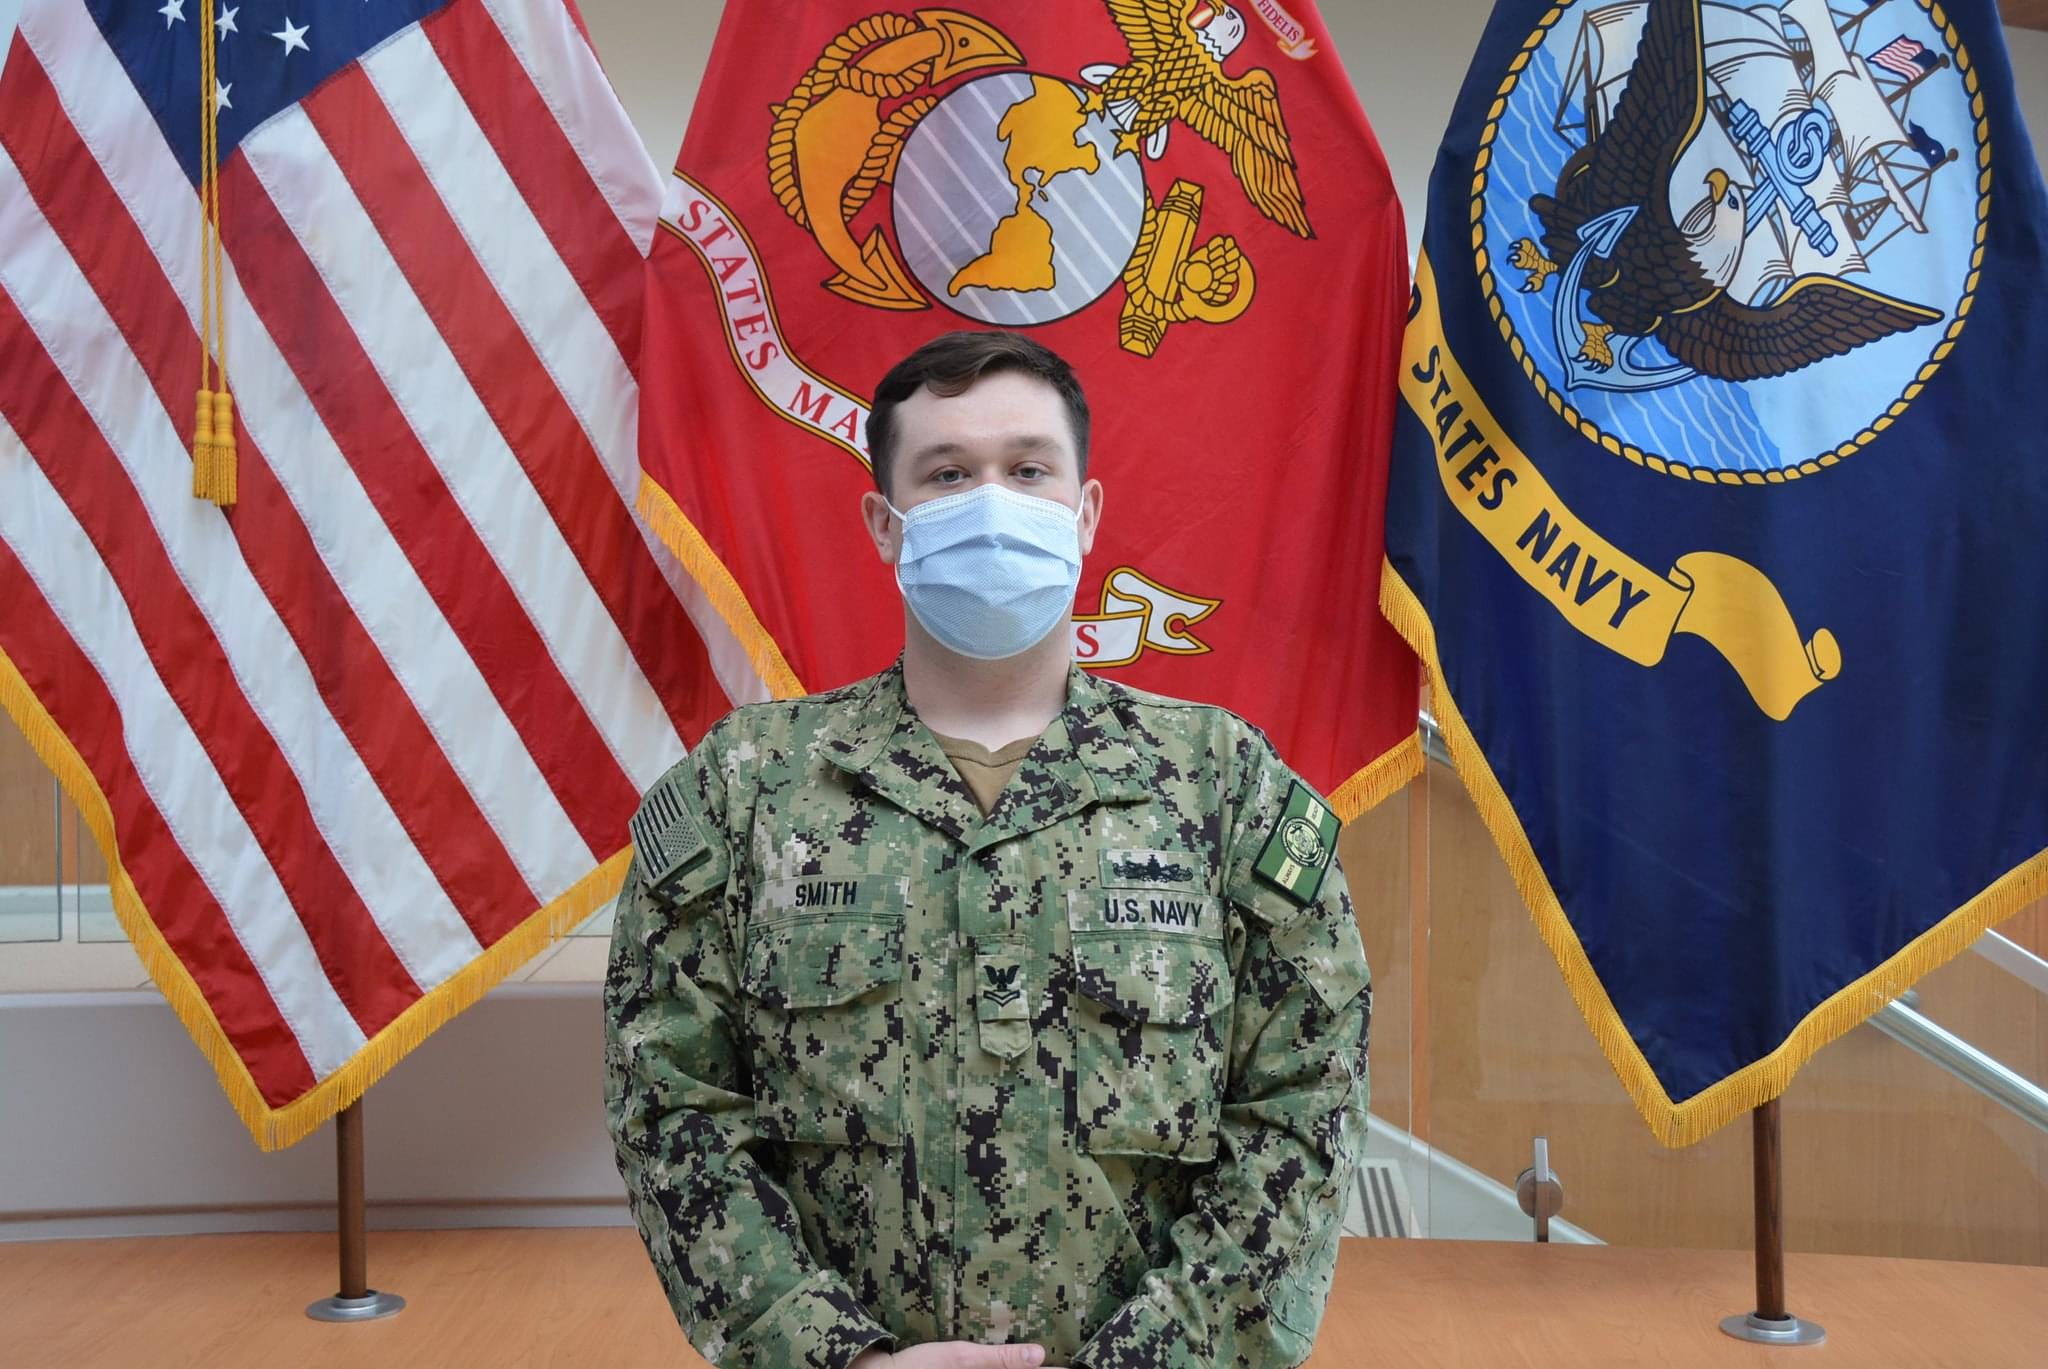 Newport News Native supports Hospital Corps on front lines of U.S. Navy Coronavirus fight